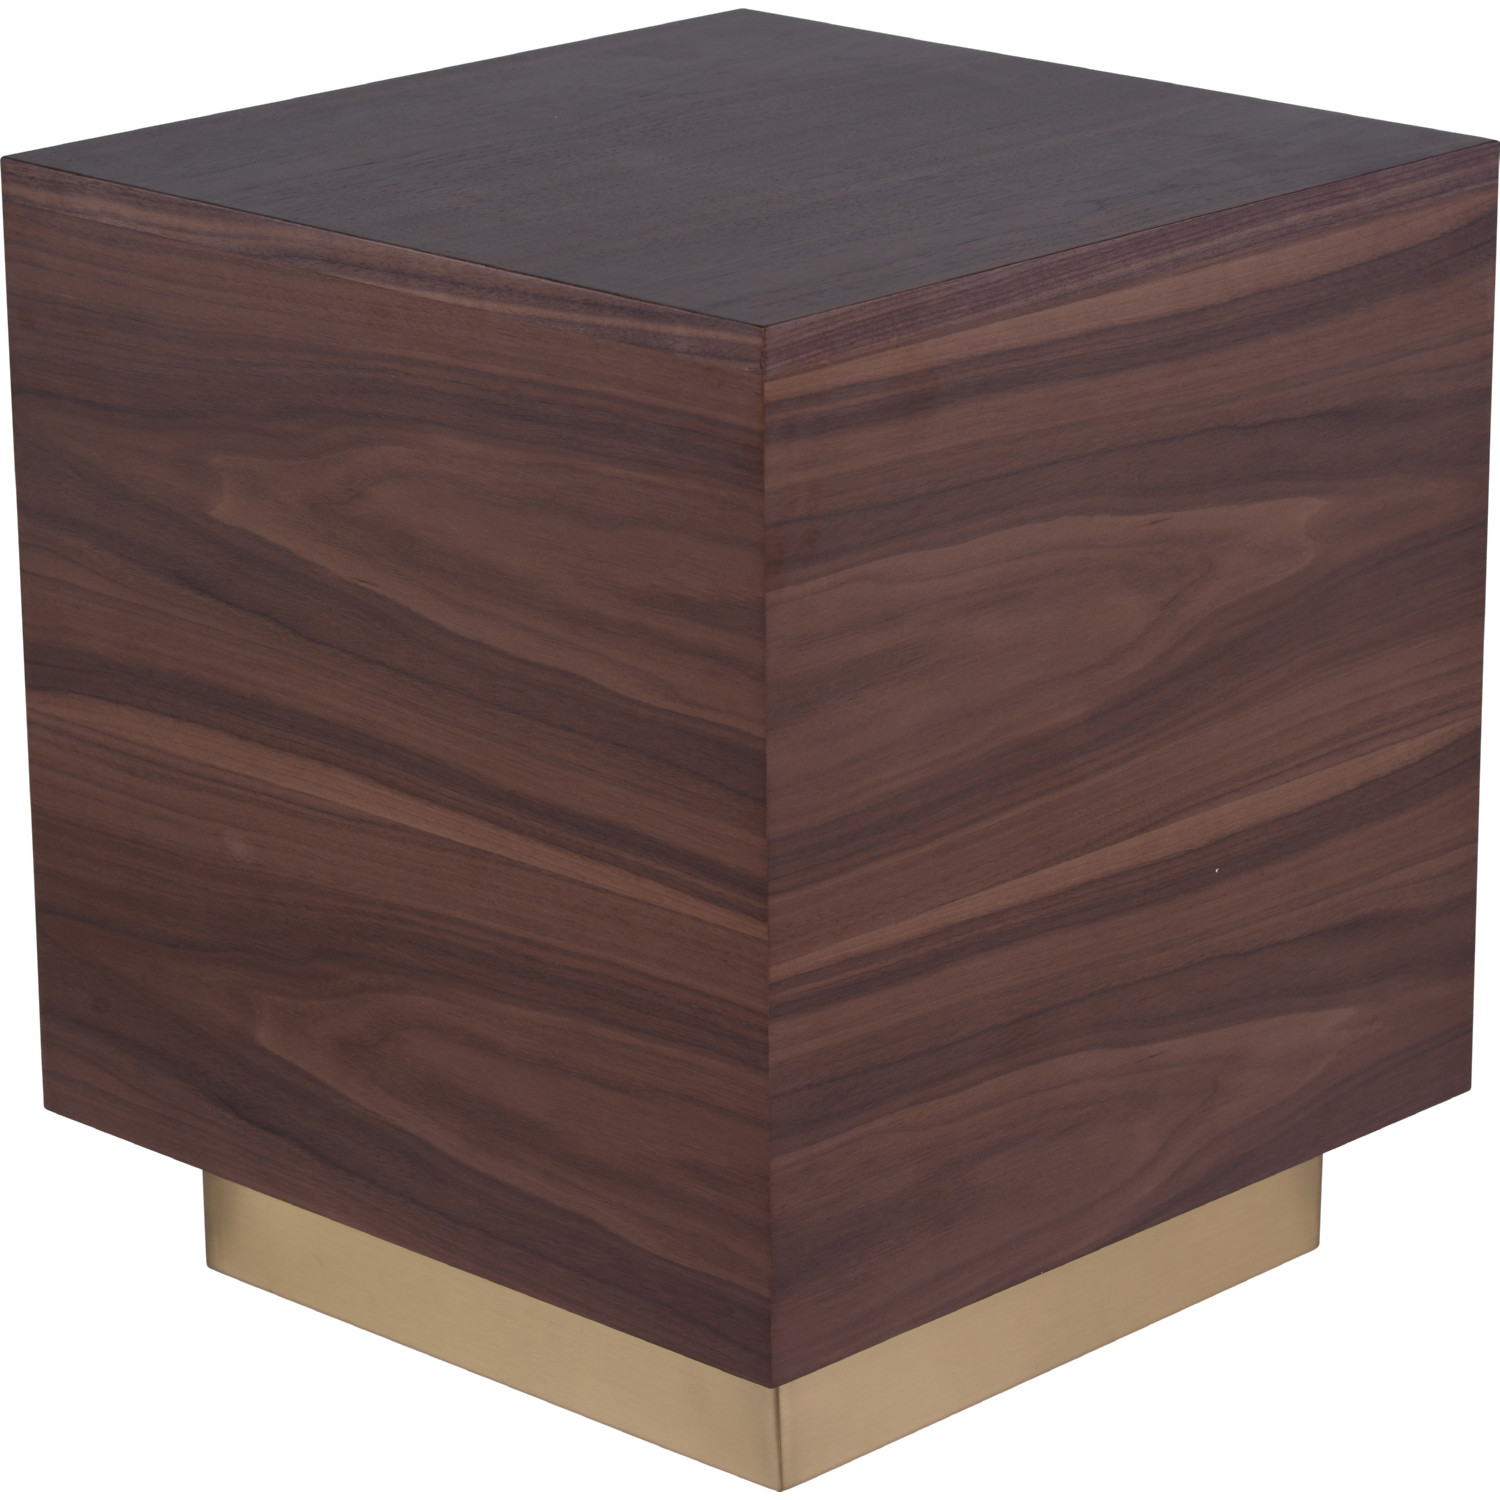 Ben Side Table In Walnut Wood Veneer On Brushed Gold Stainless By Nuevo Modern Furniture